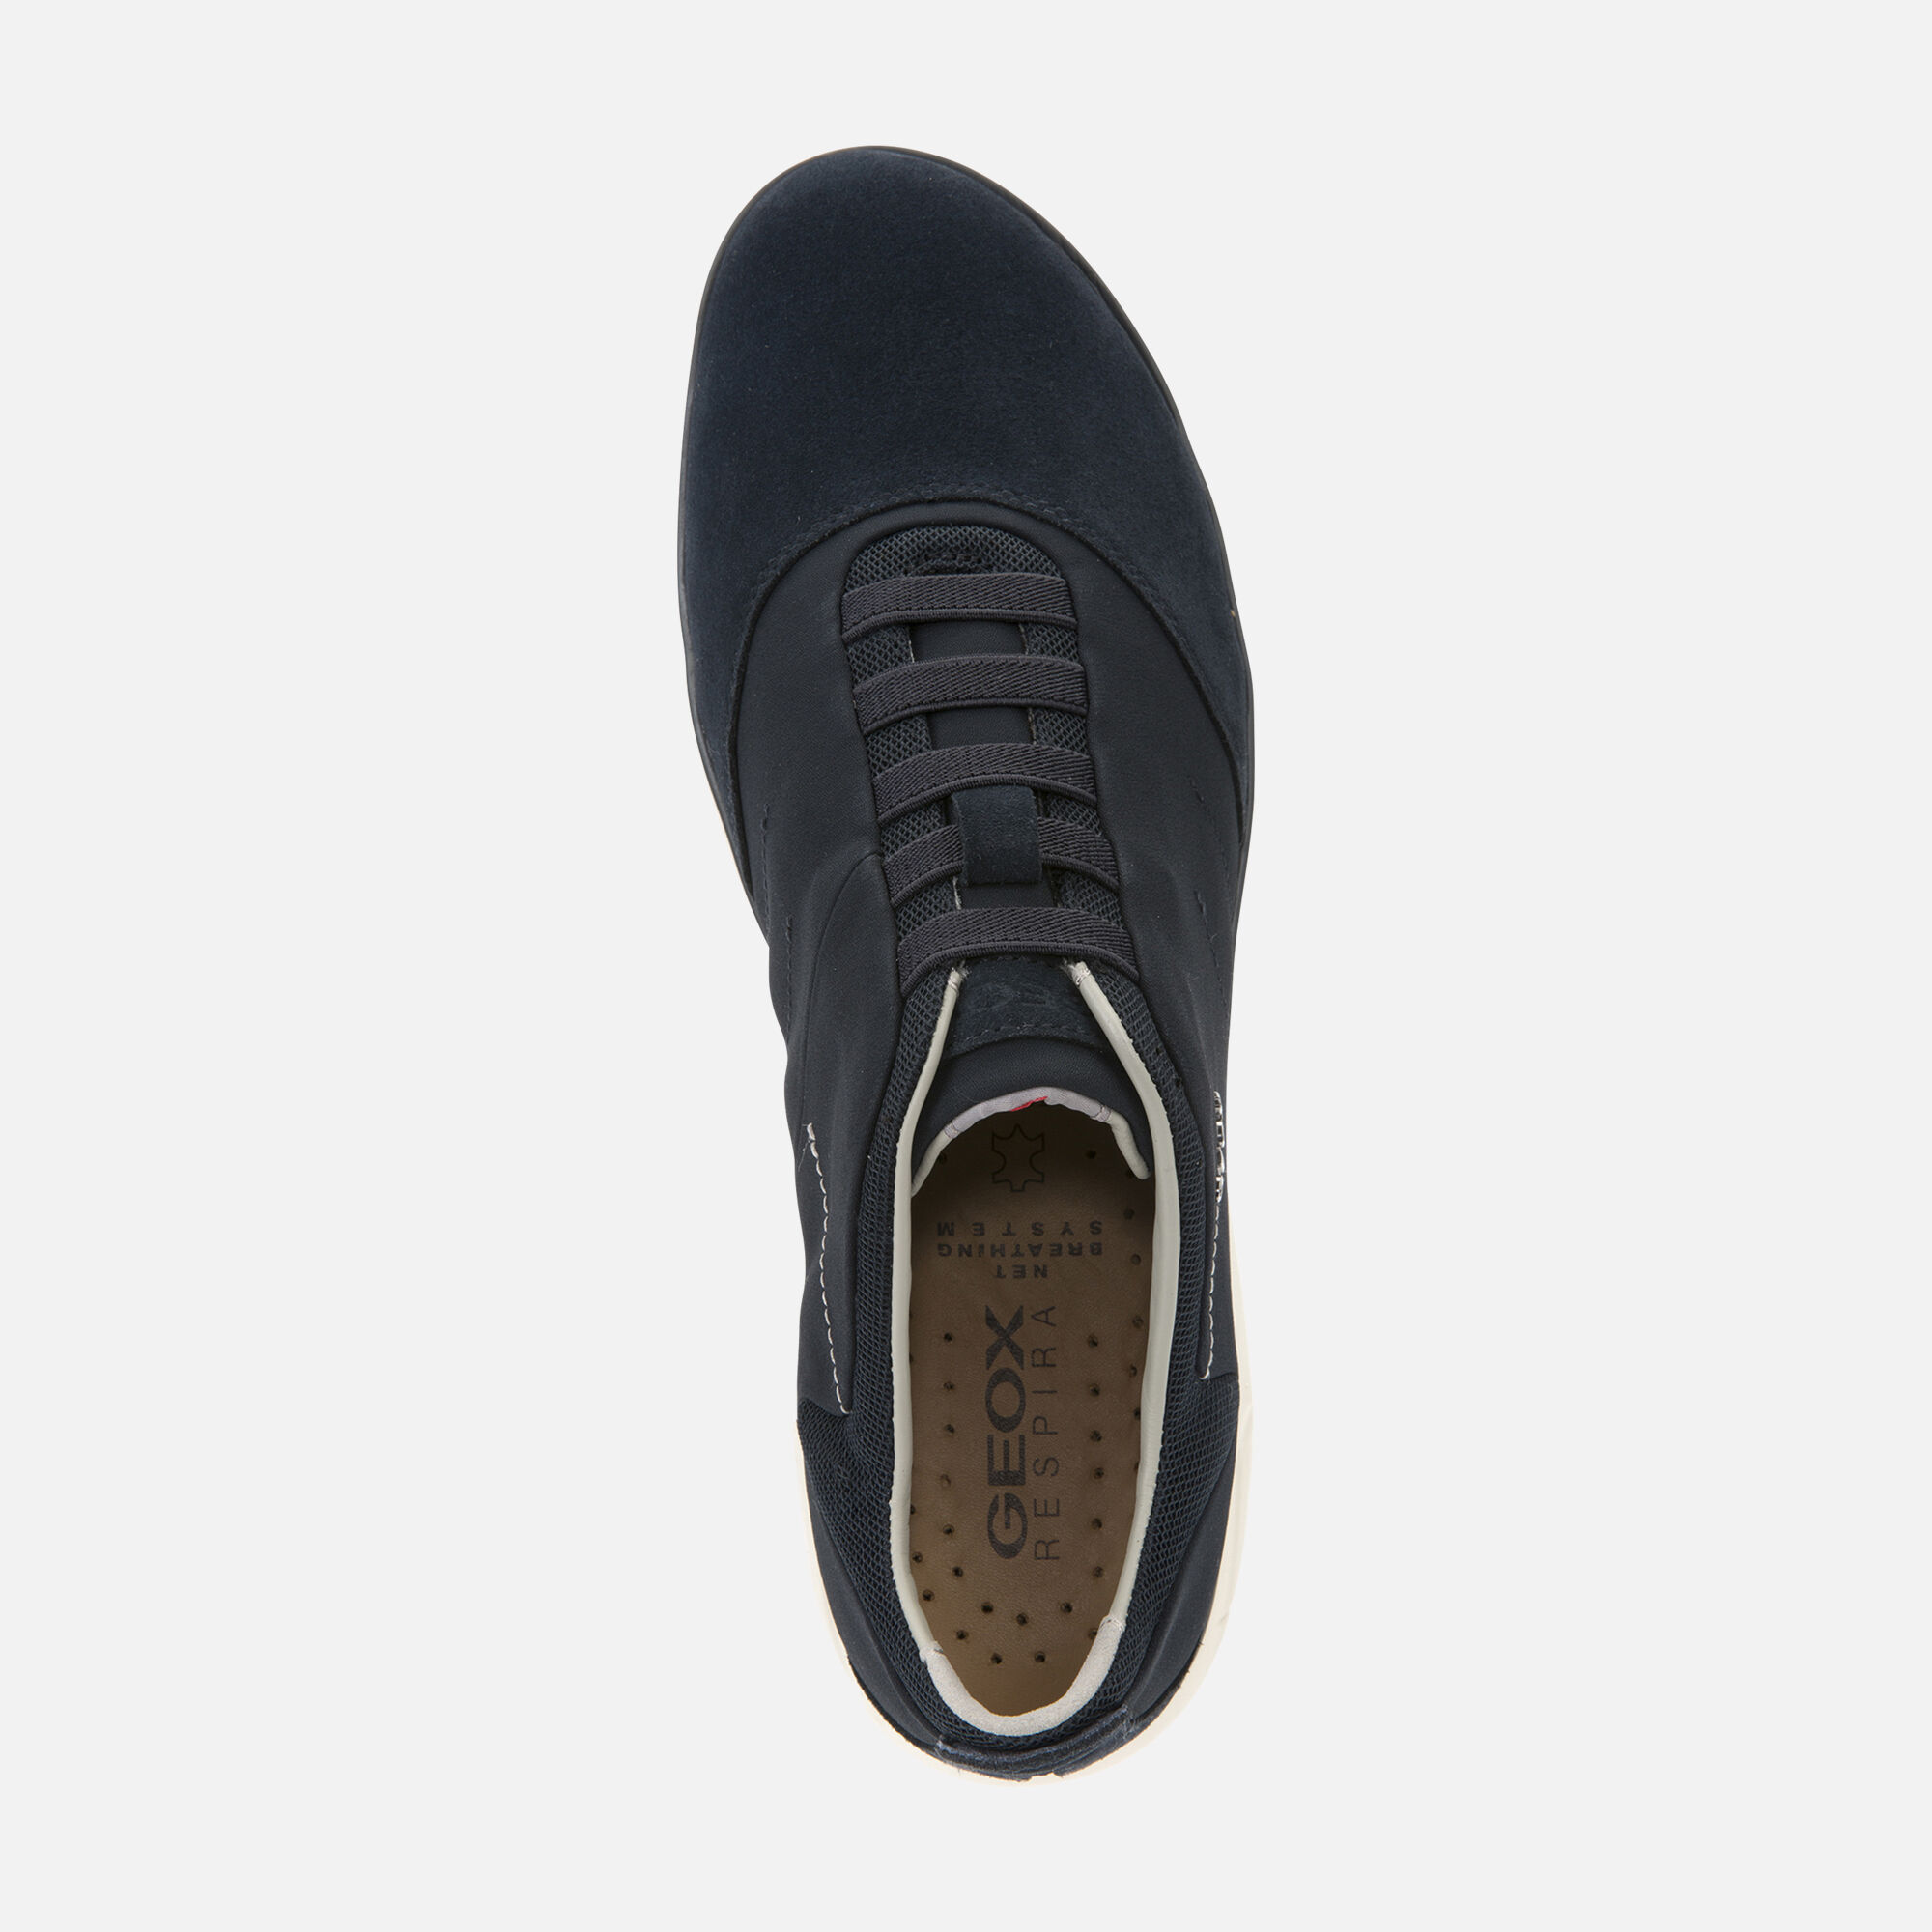 Details about Geox Nebula Slip On Sports Shoes Mens Navy Trainers Leather Suede UK 7 11